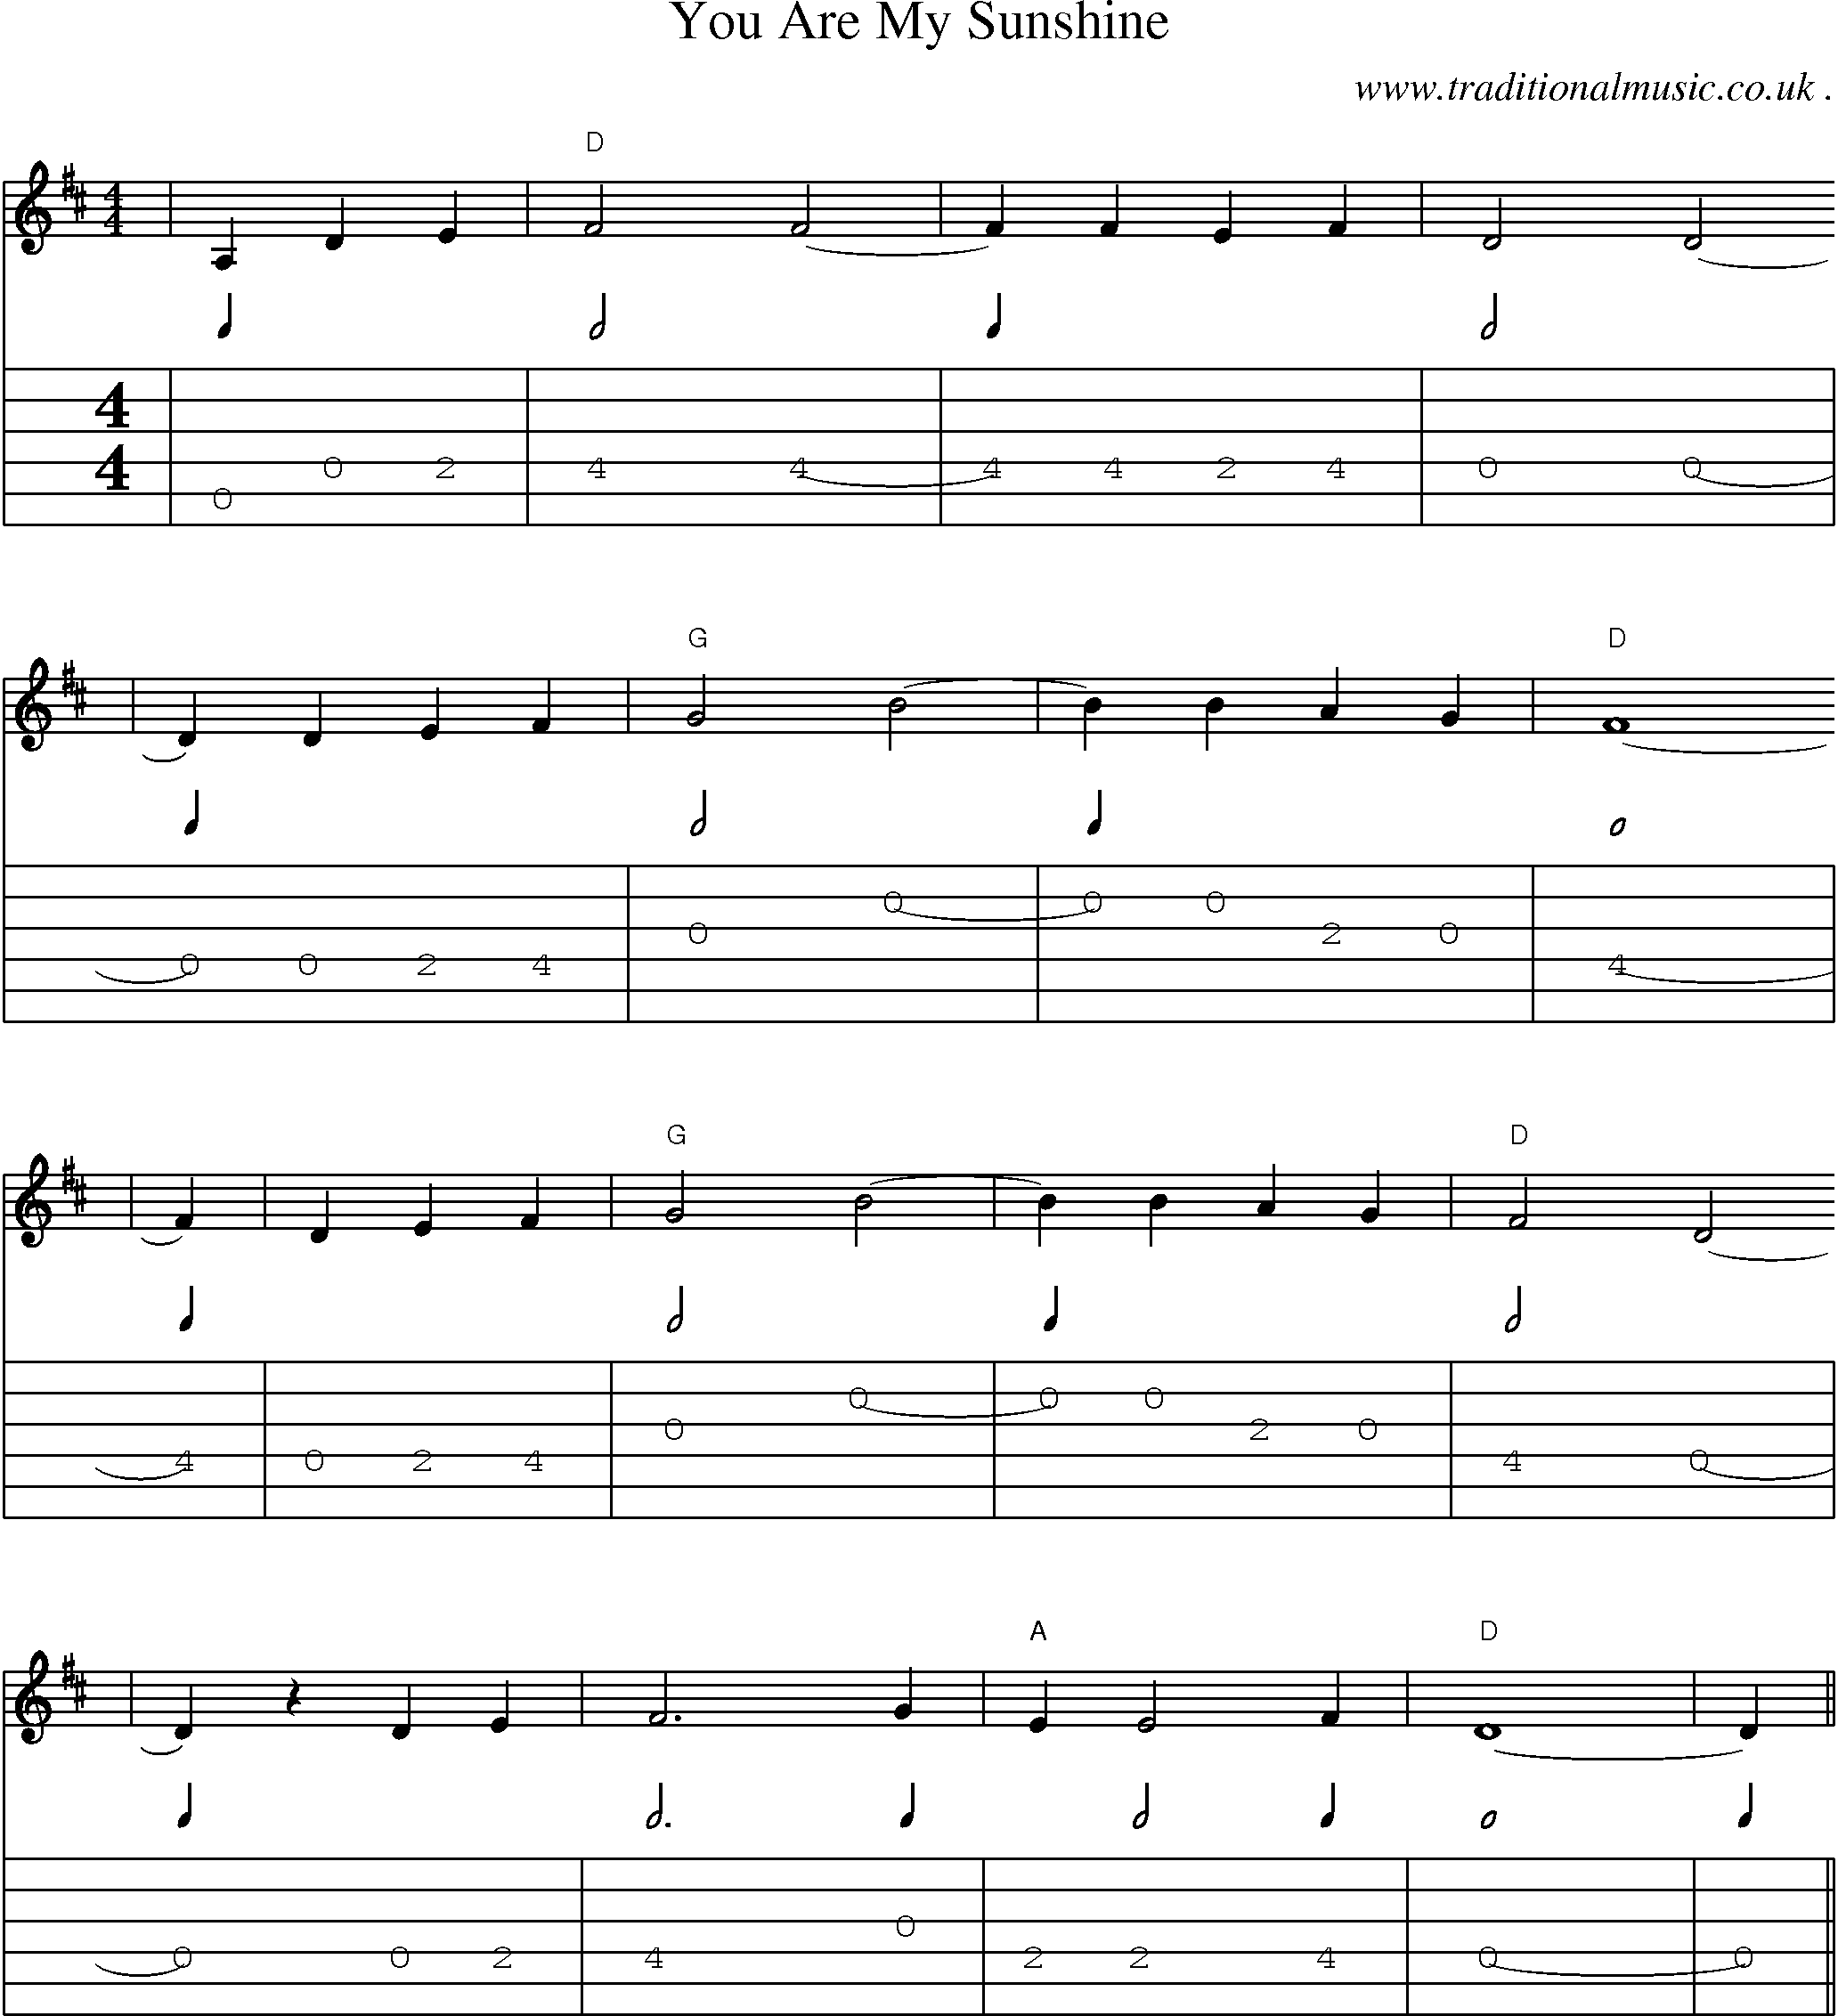 American Old-time music, Scores and Tabs for Guitar - You Are My Sunshine